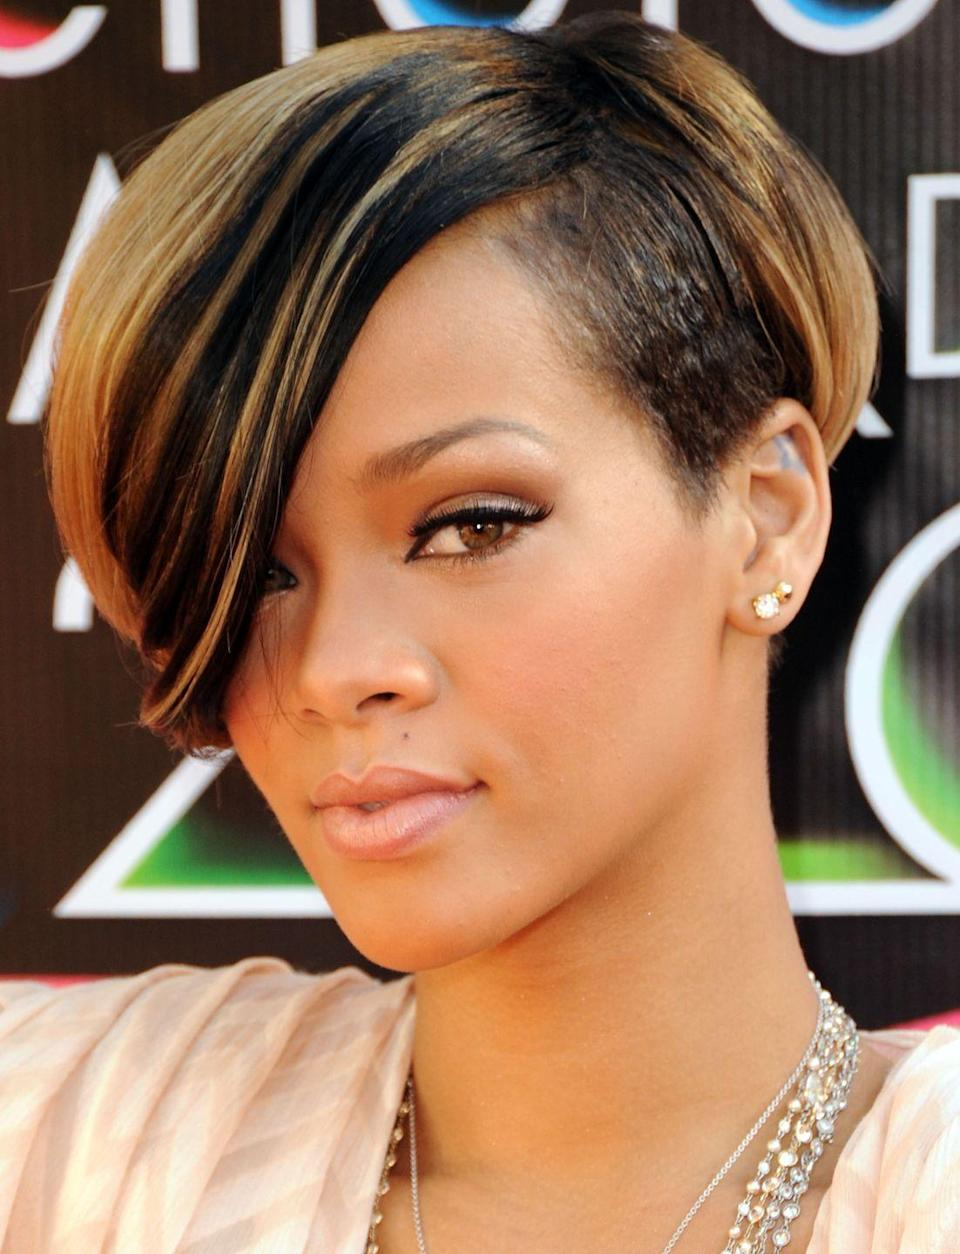 <p>What's more to love about singer <strong>Rihanna's </strong>throwback style, the color or the cut? Not to mention, the deep side part and major swoop gives this look sexy yet sweet vibes. </p>